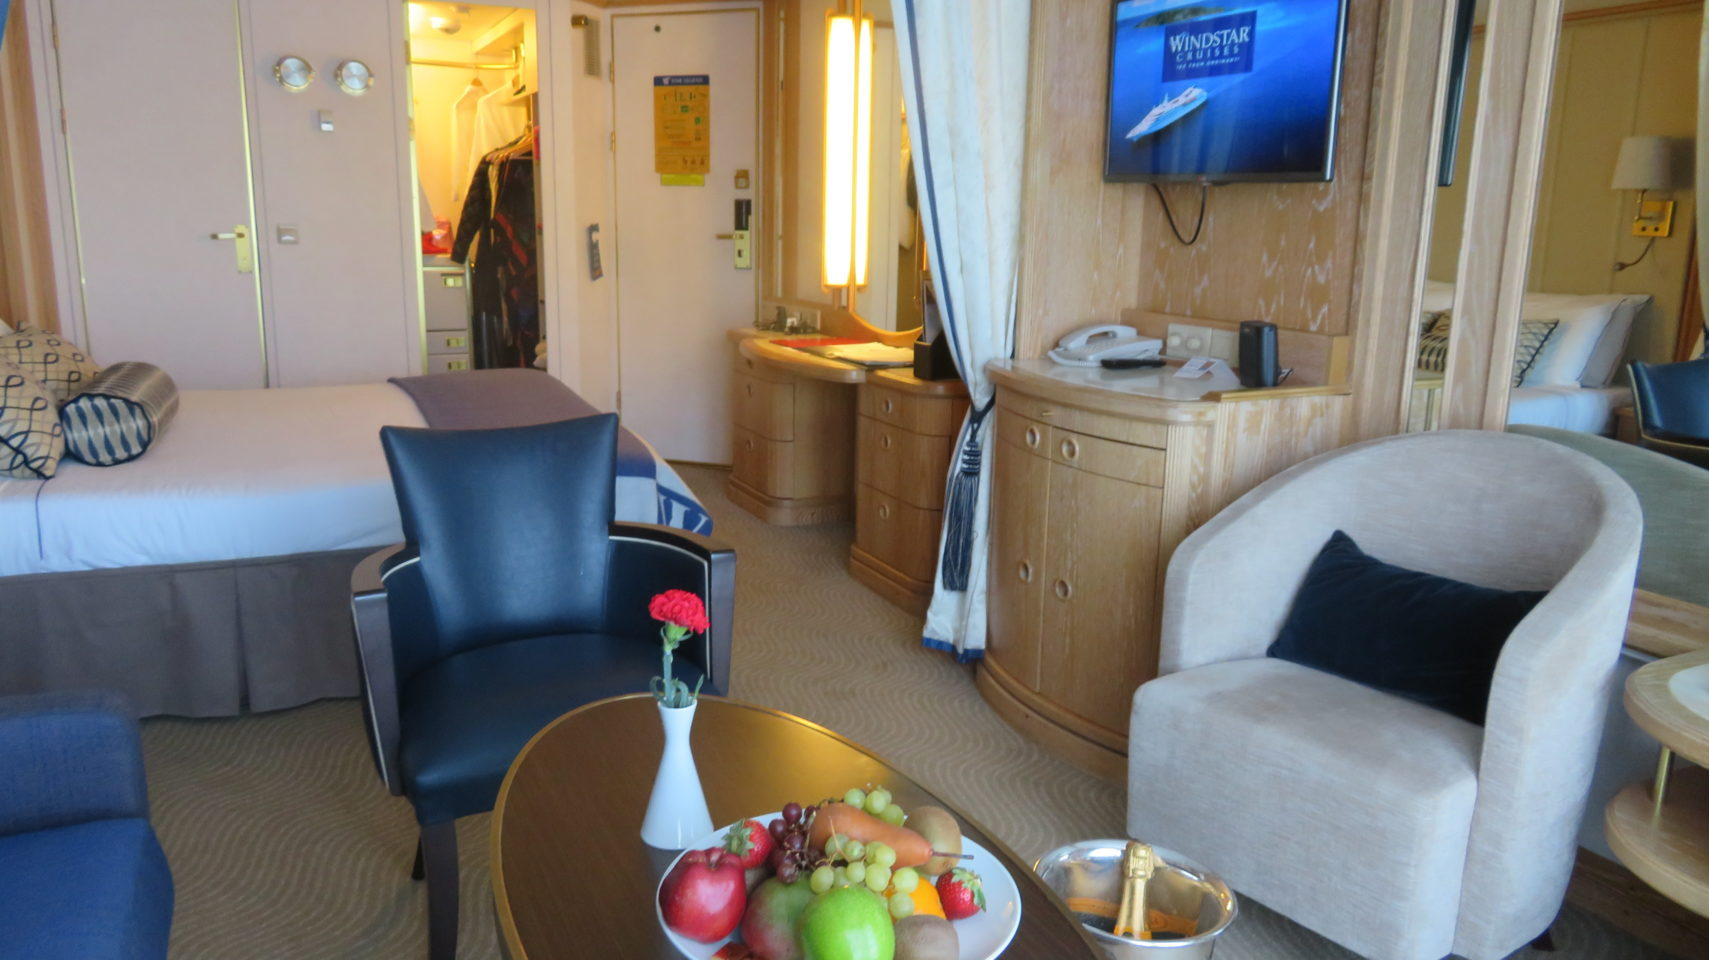 Windstar Cruises ~ our ideal cabin, from fresh fruit to the perfect dressing table with both American and European outlets